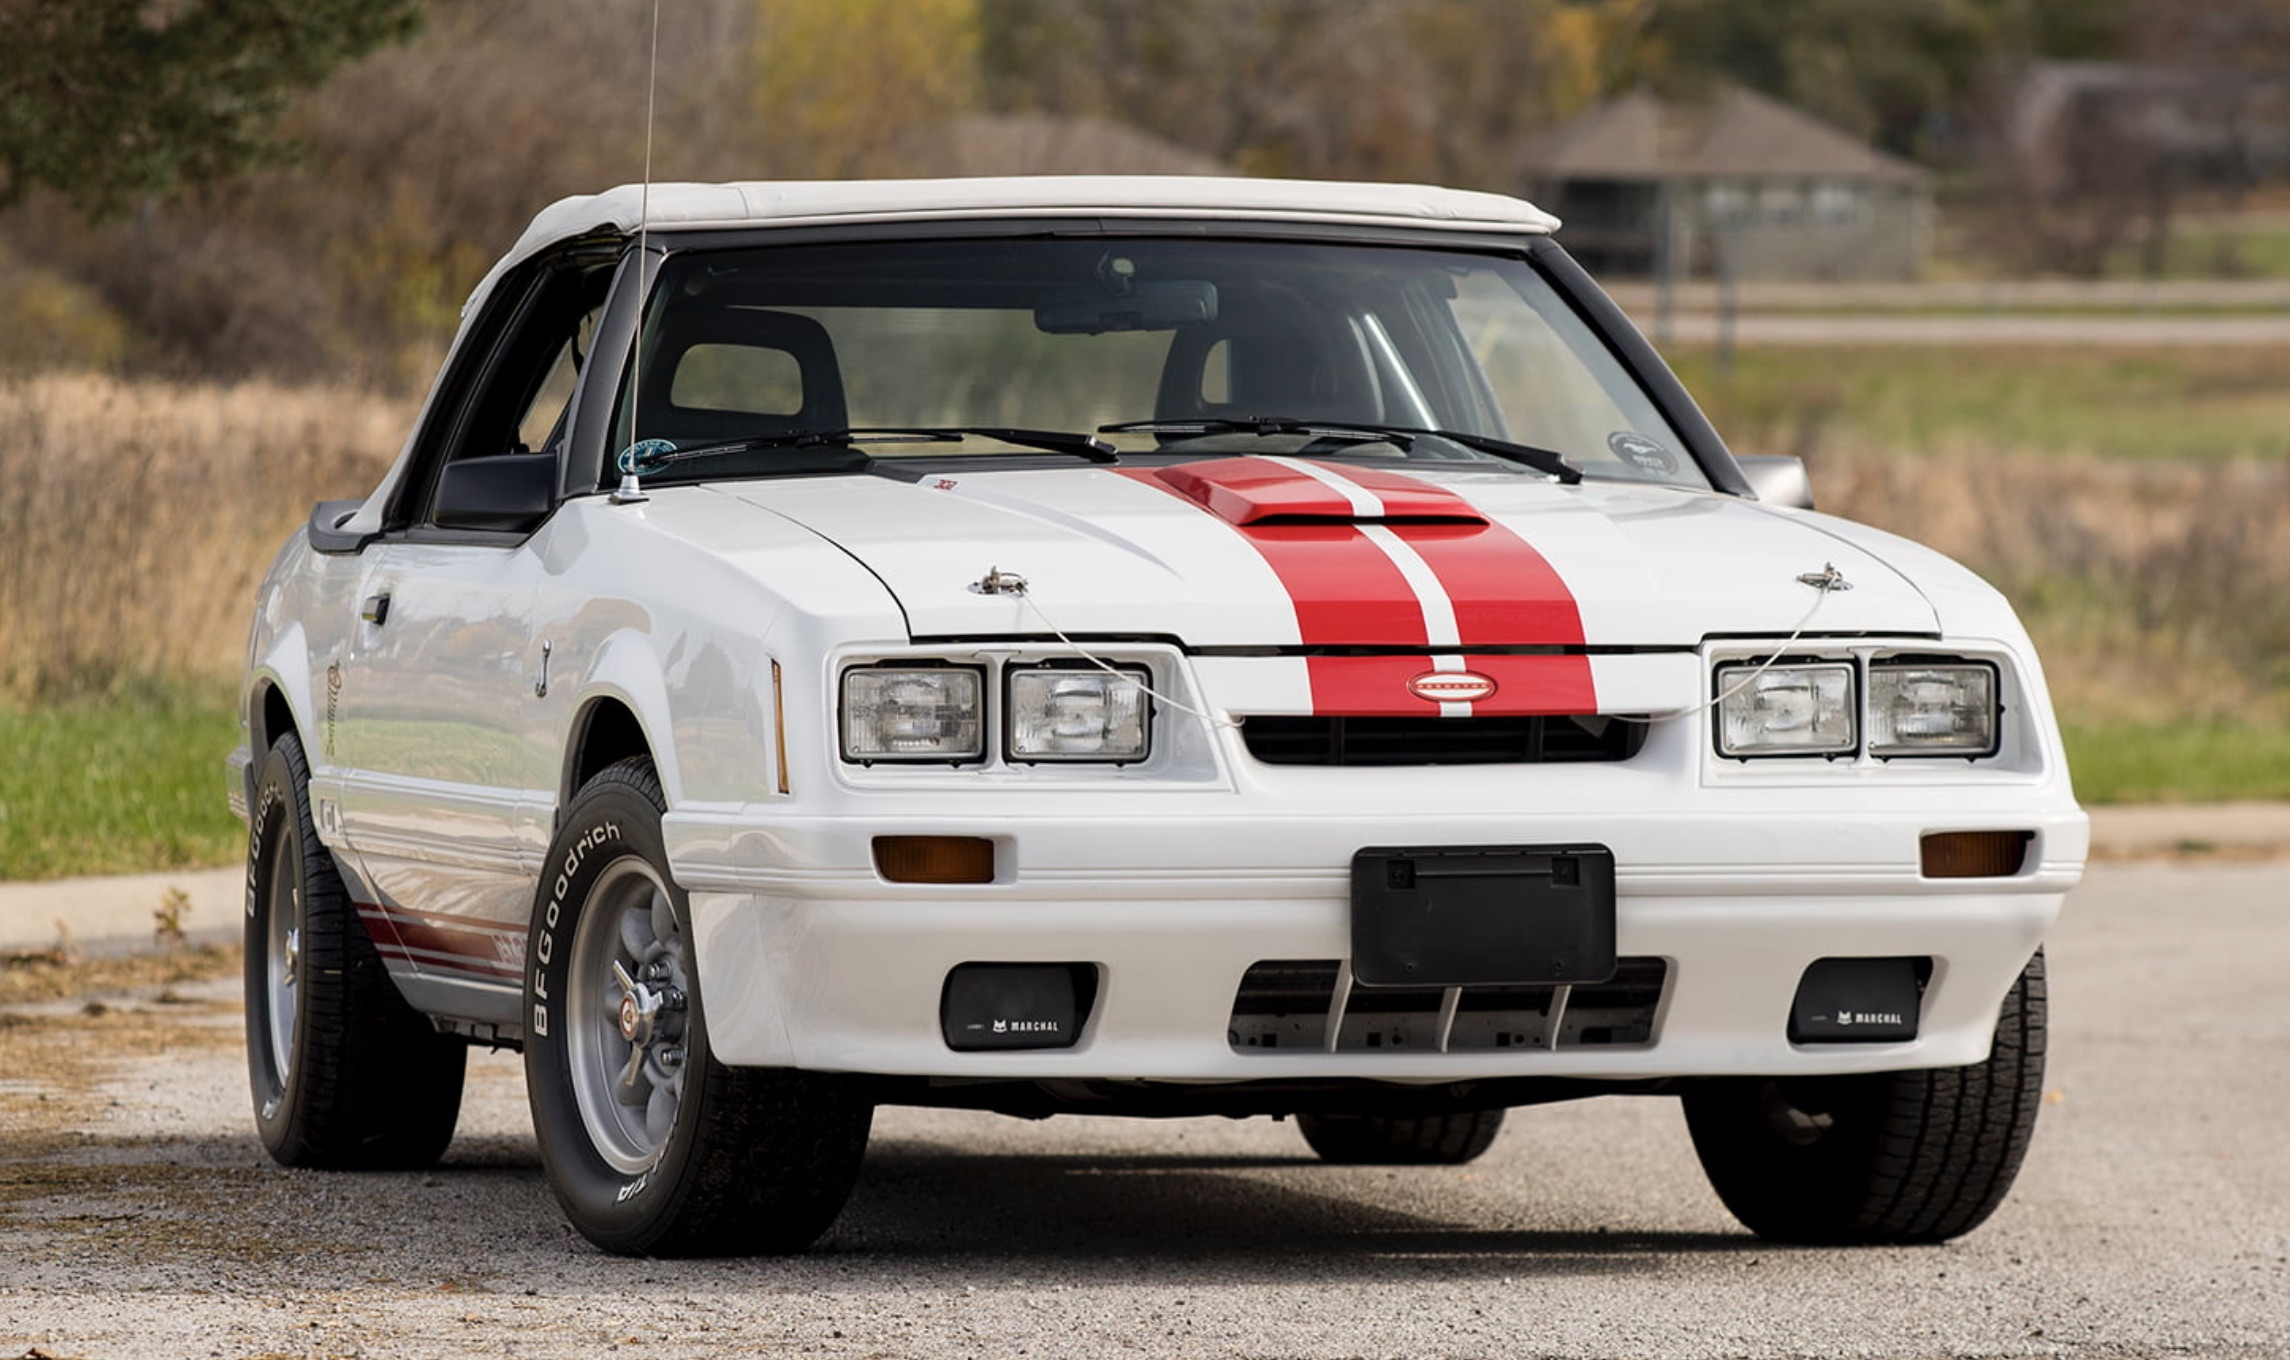 Money No Object: Two Fox-Body Specials In One Convertible – A 1985 Ford Mustang Twister II Predator G.T. 302!